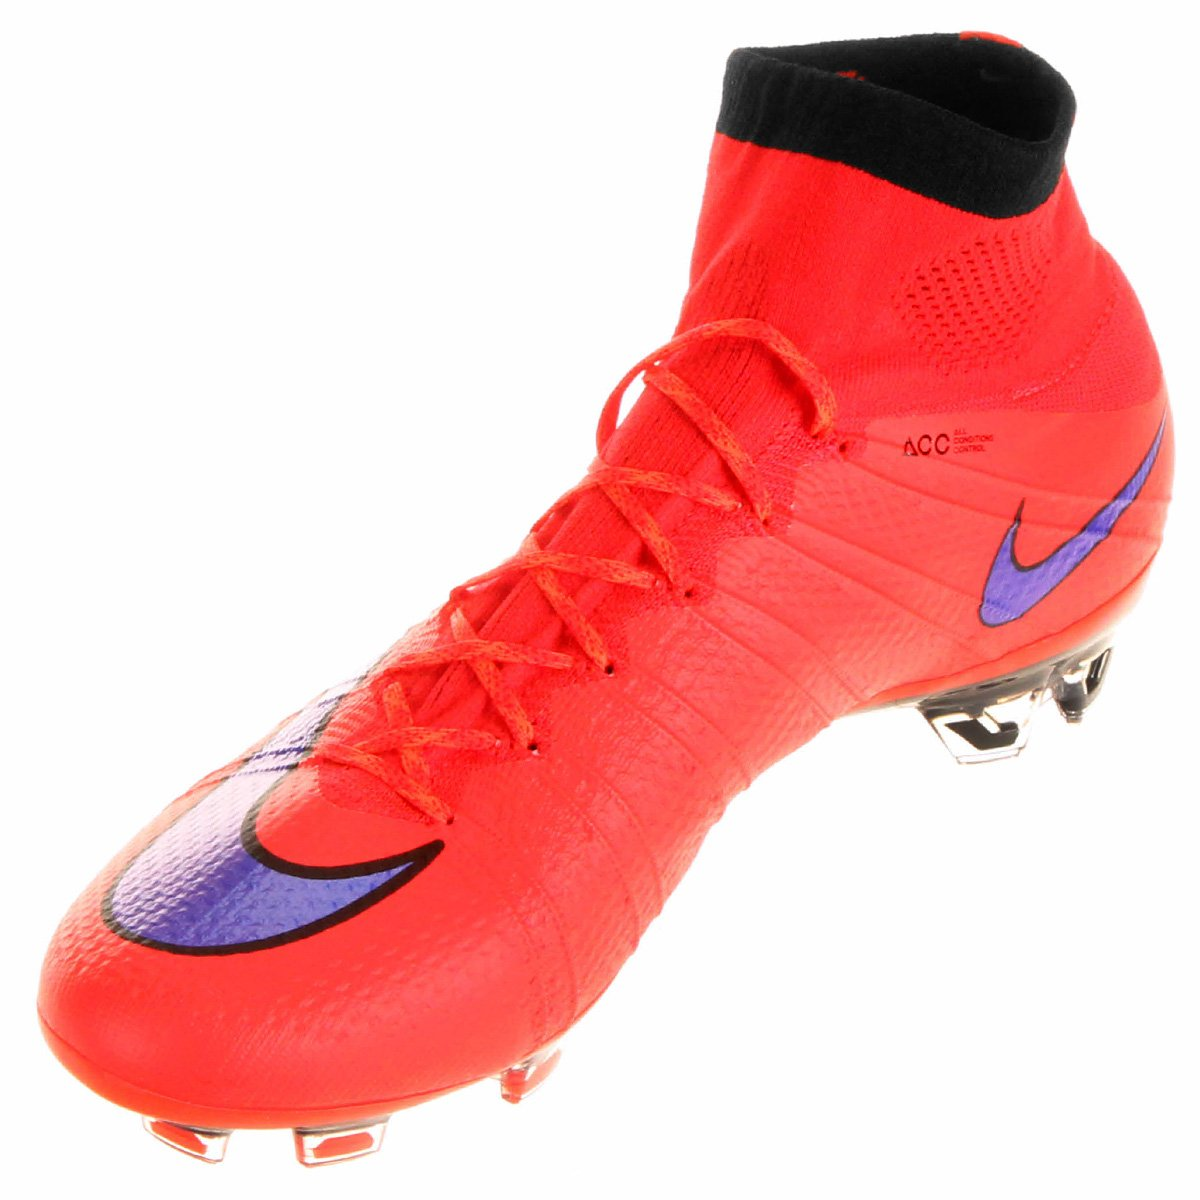 quality design 762bc ab44d ... netherlands chuteira nike mercurial superfly fg campo ef8d0 322a4